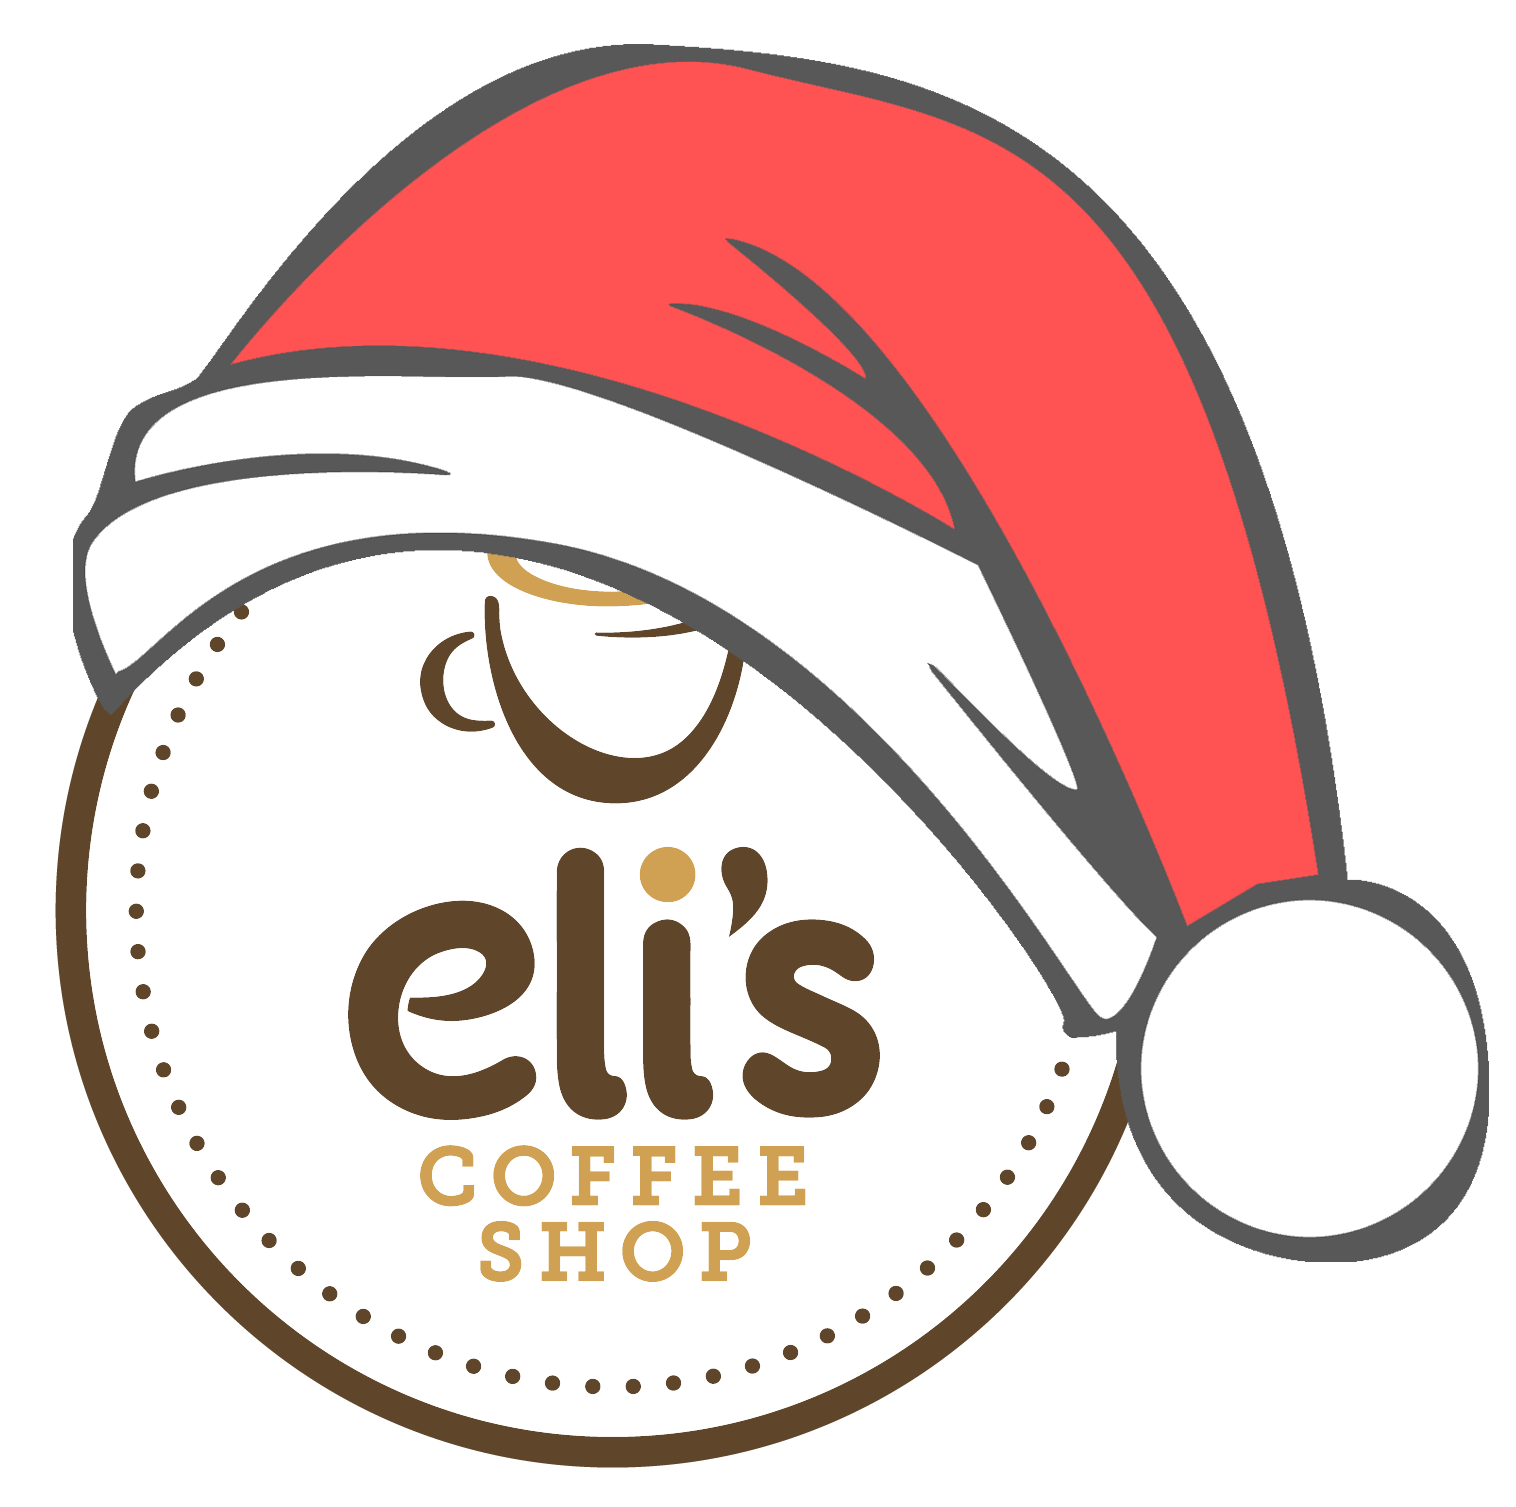 Eli's Coffee Shop